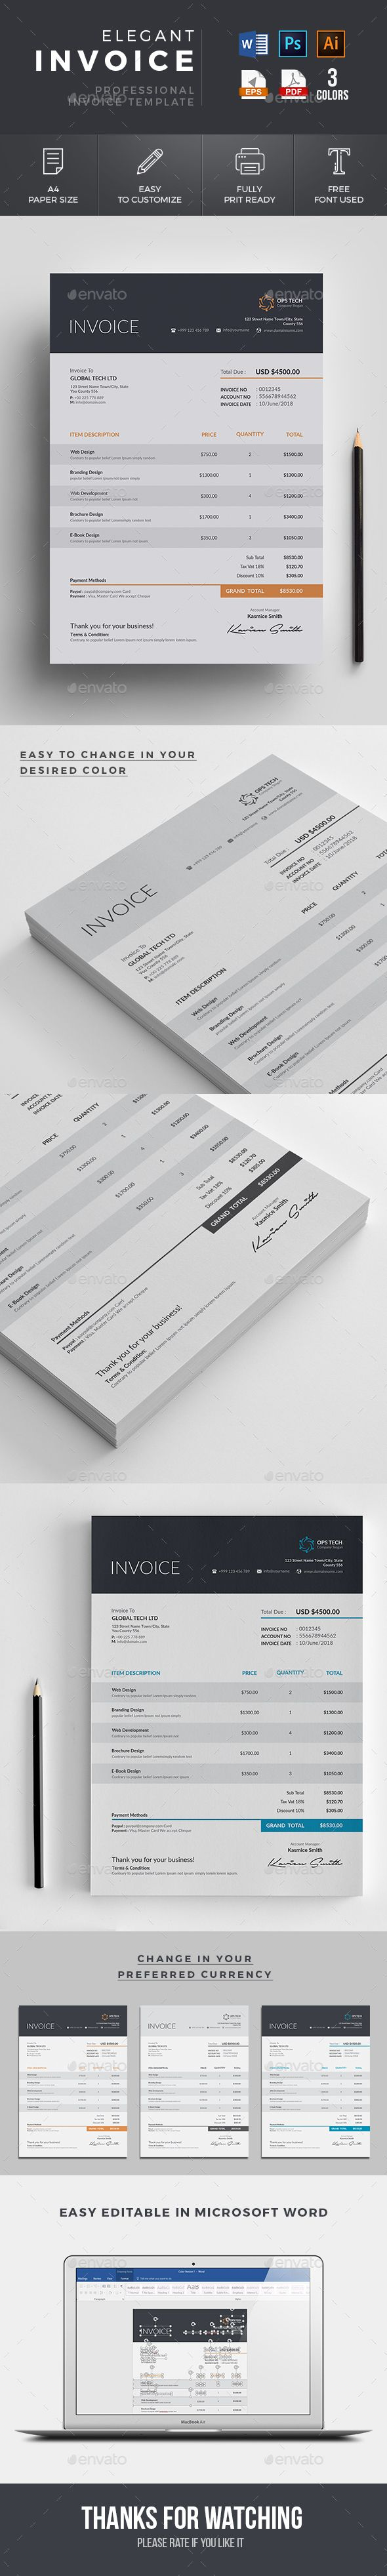 #Invoice - #Proposals & Invoices #Stationery Download here: https://graphicriver.net/item/invoice/19283408?alena994